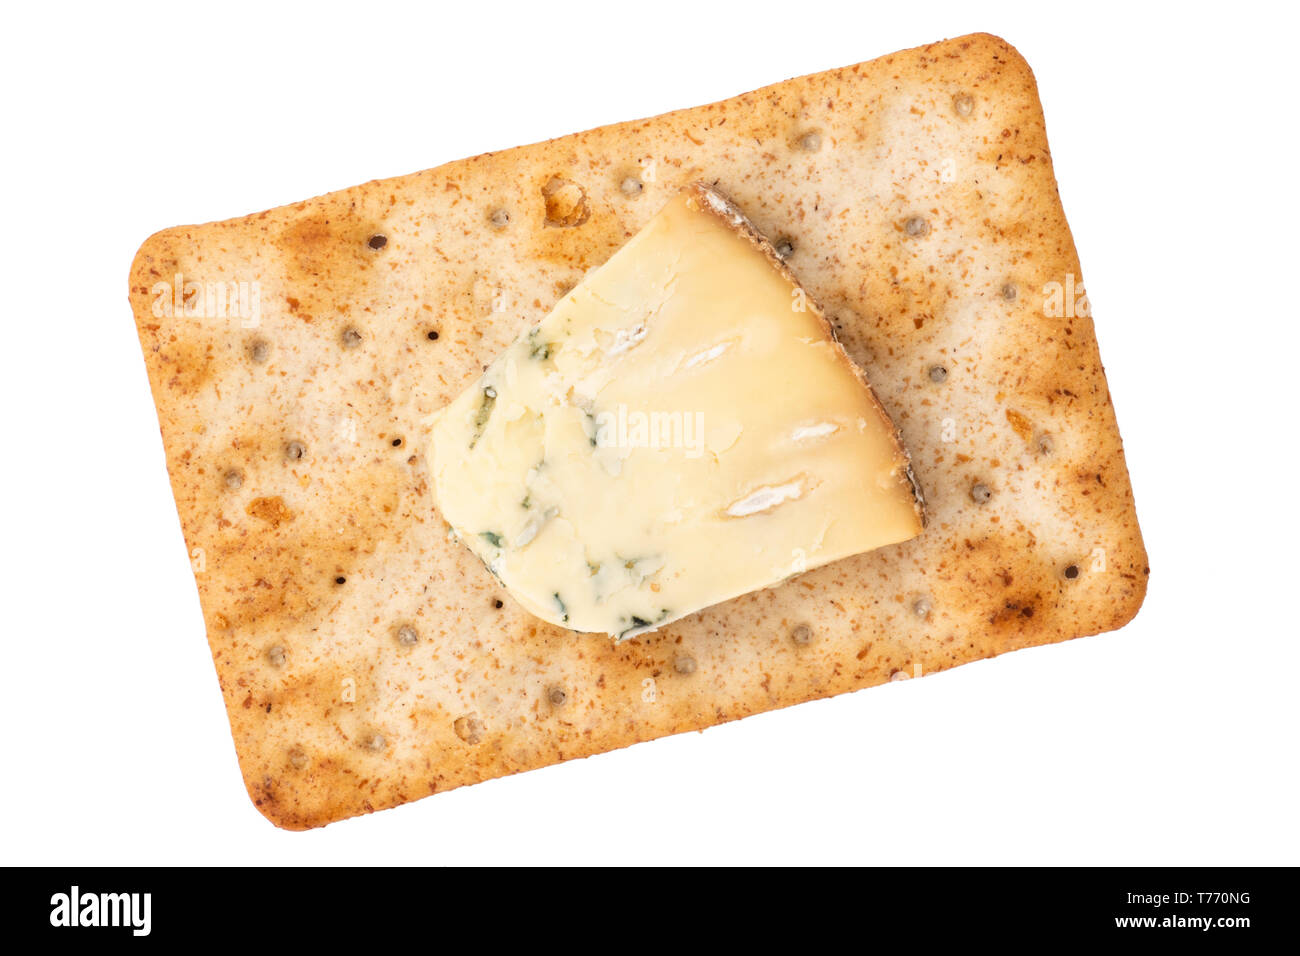 Cheese cracker with Blue Stilton cheese. Sourdough crackers for a quick snack, UK. Cut out or isolated on a white background. - Stock Image